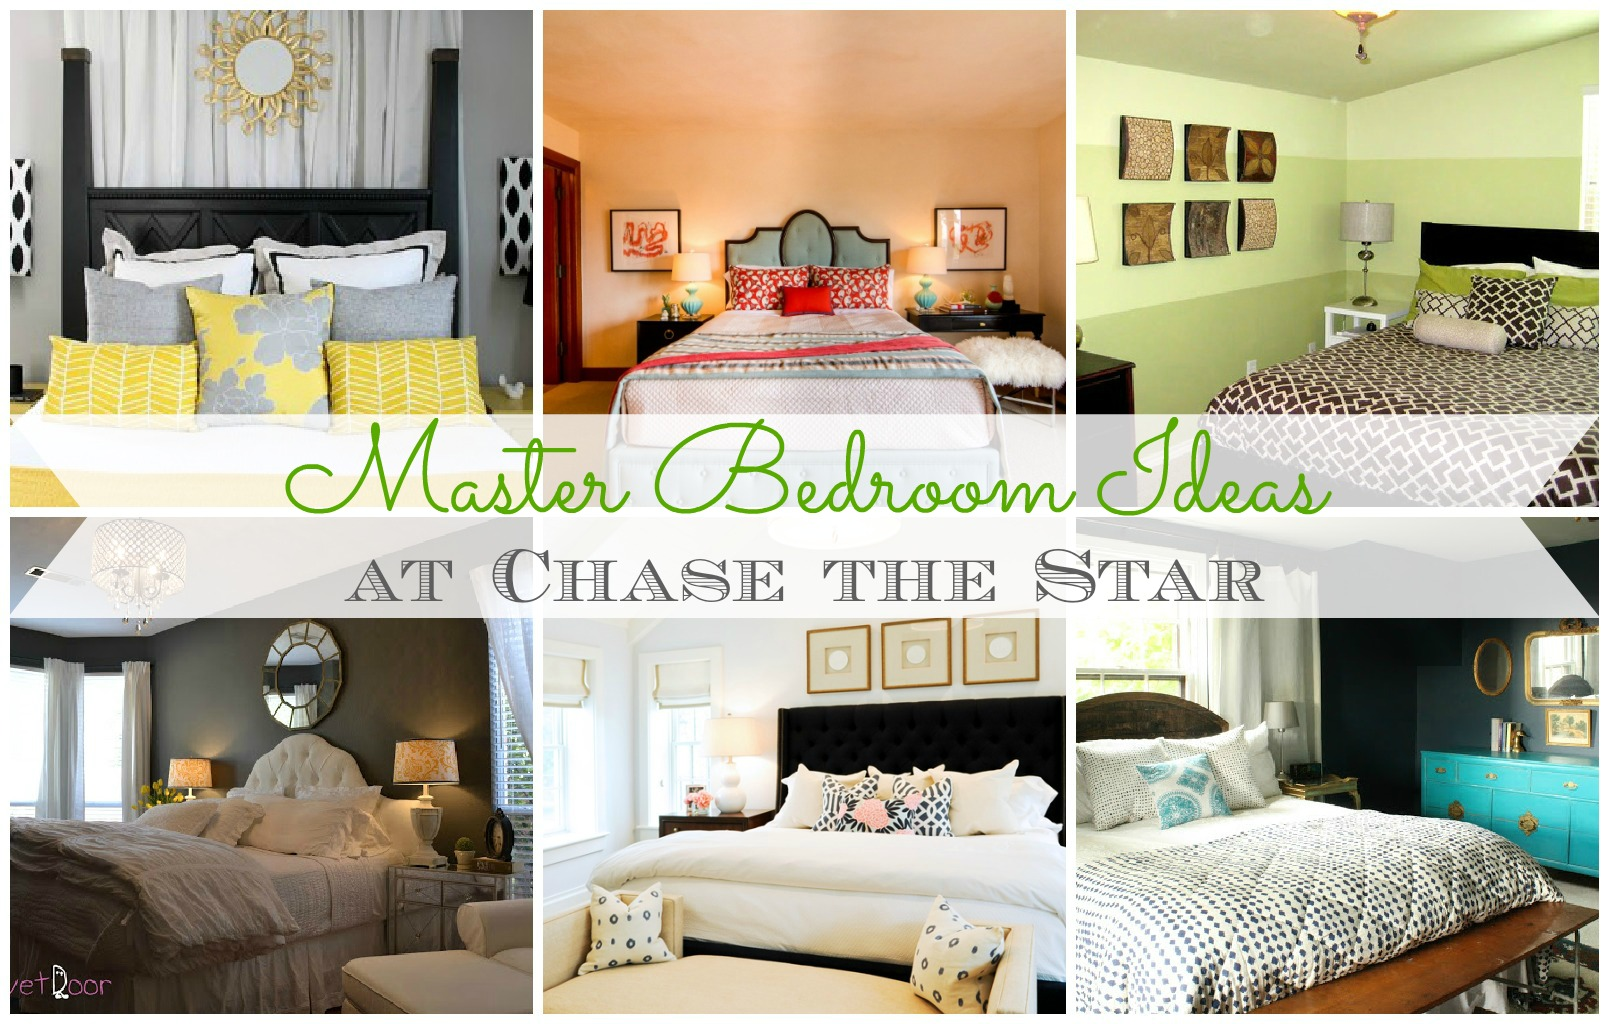 bedroom picture collage ideas - Master Bedroom Ideas